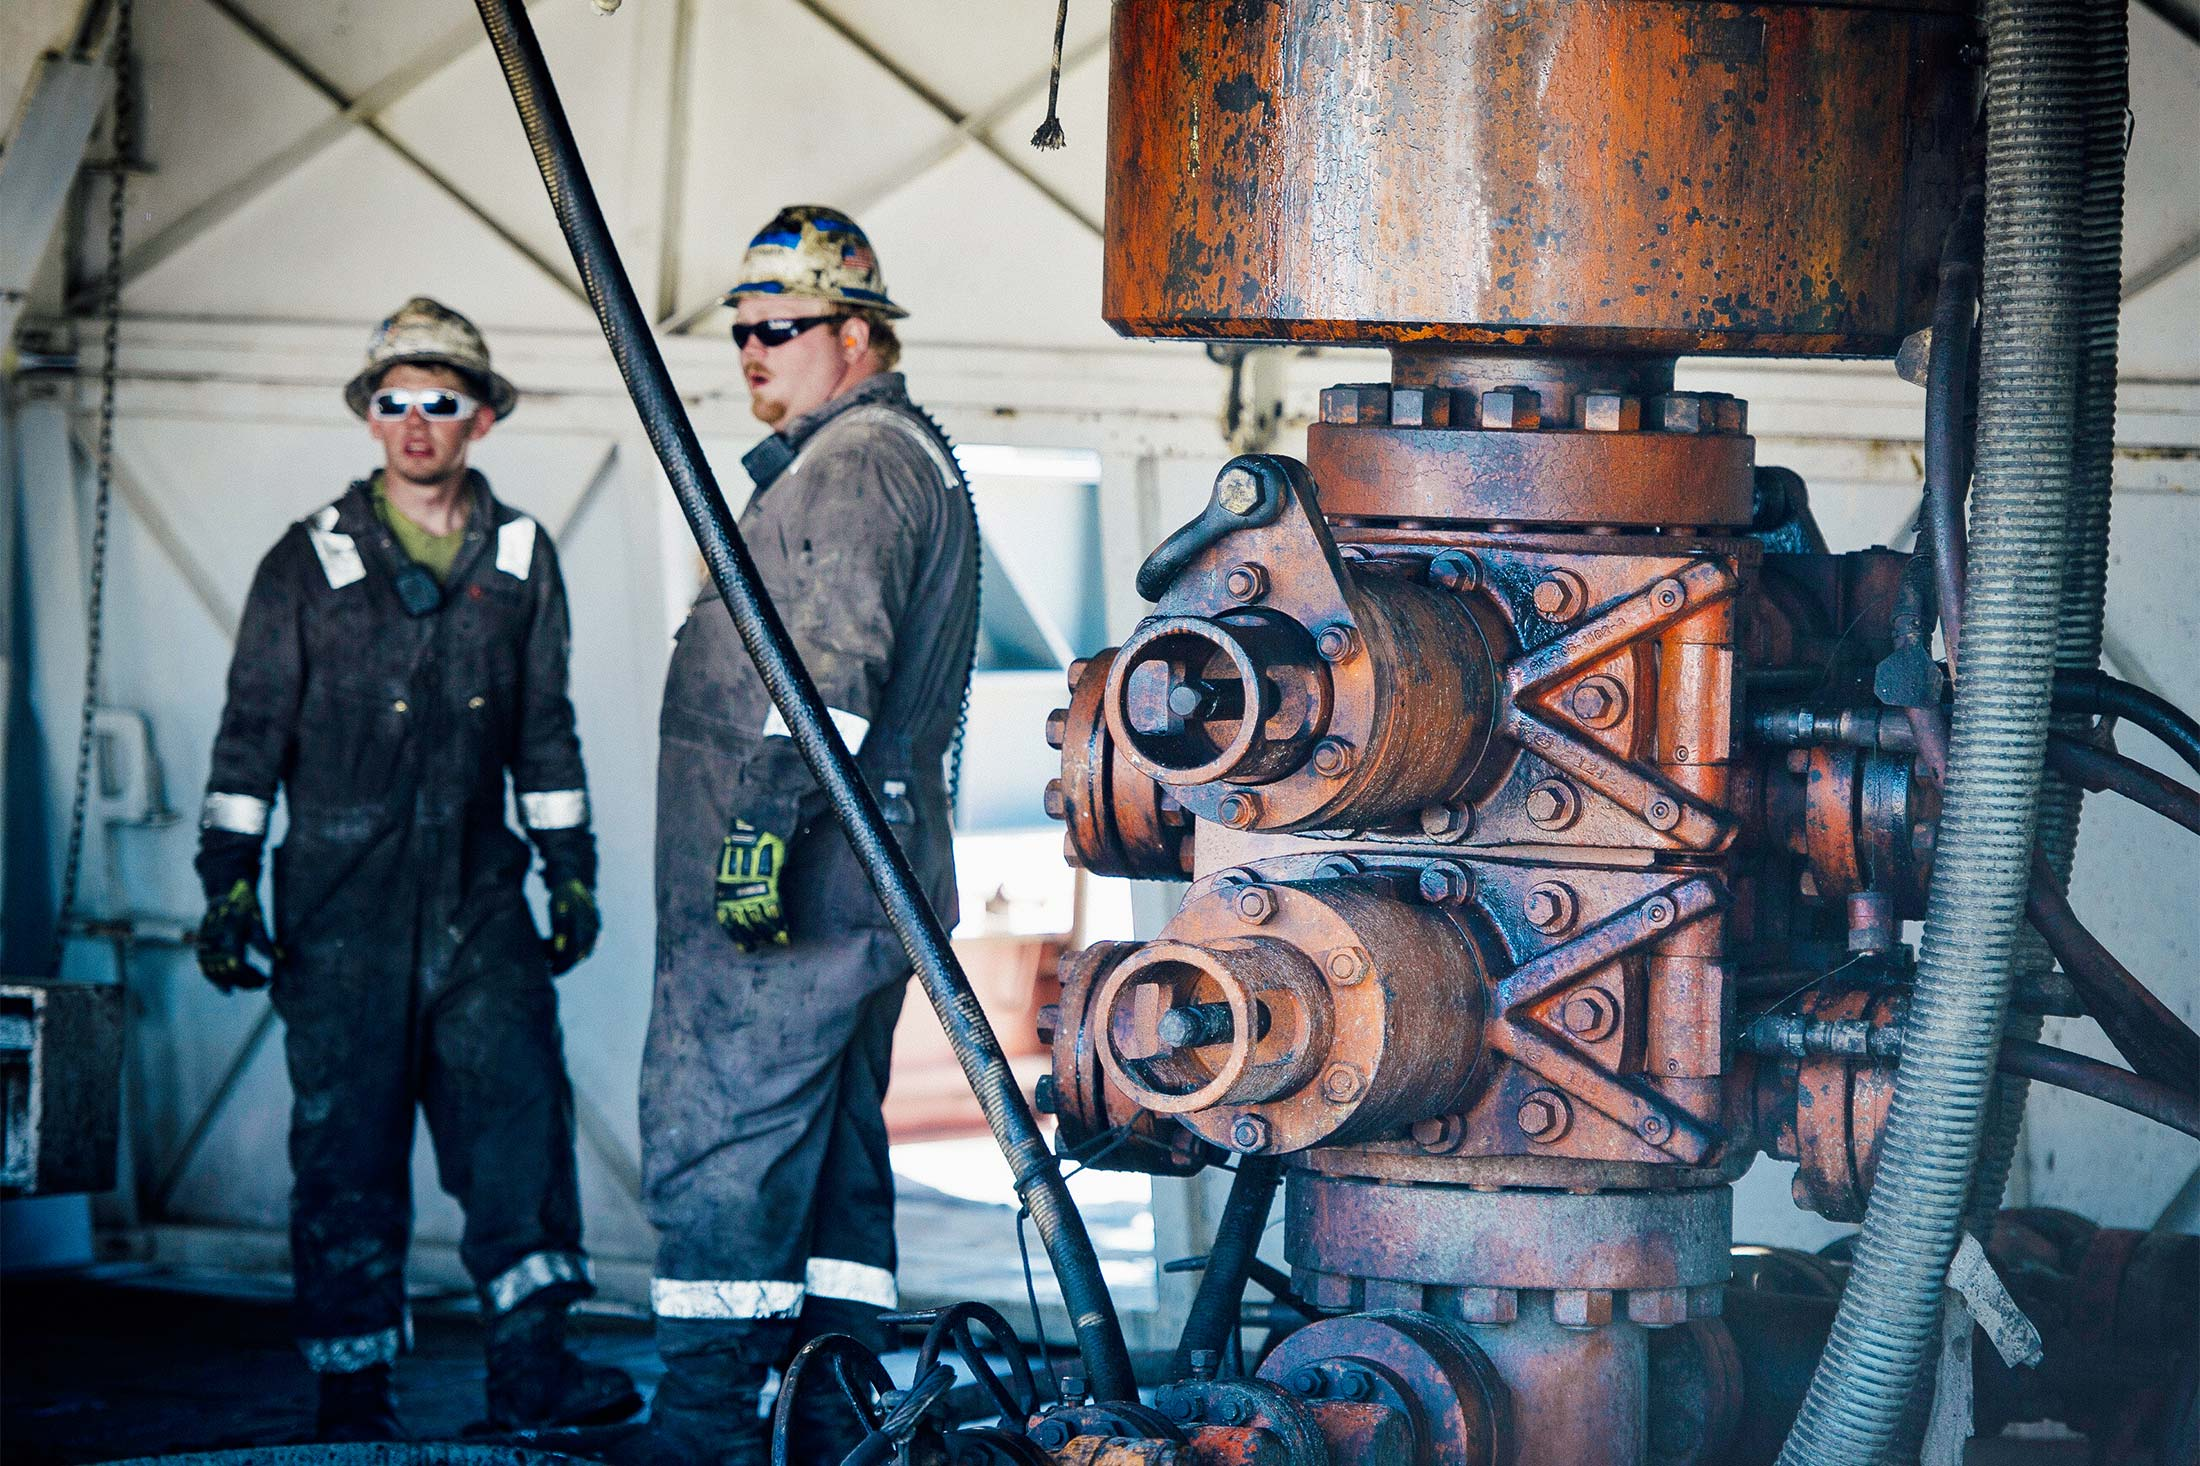 Workers chat beside a Consol Energy drilling rig.